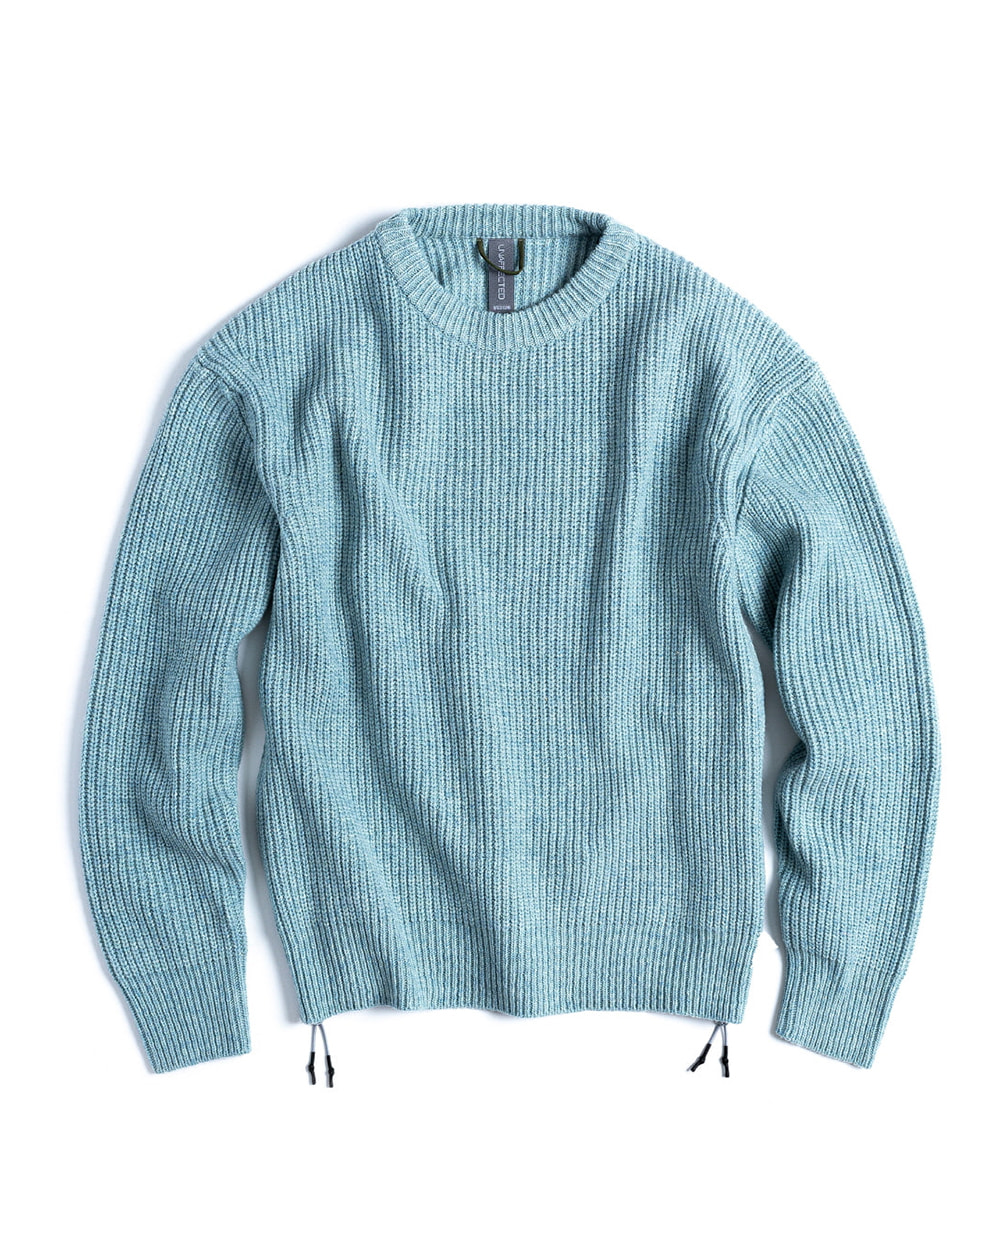 언어펙티드 OVERSIZED CREWNECK KNIT (Mint Melange)